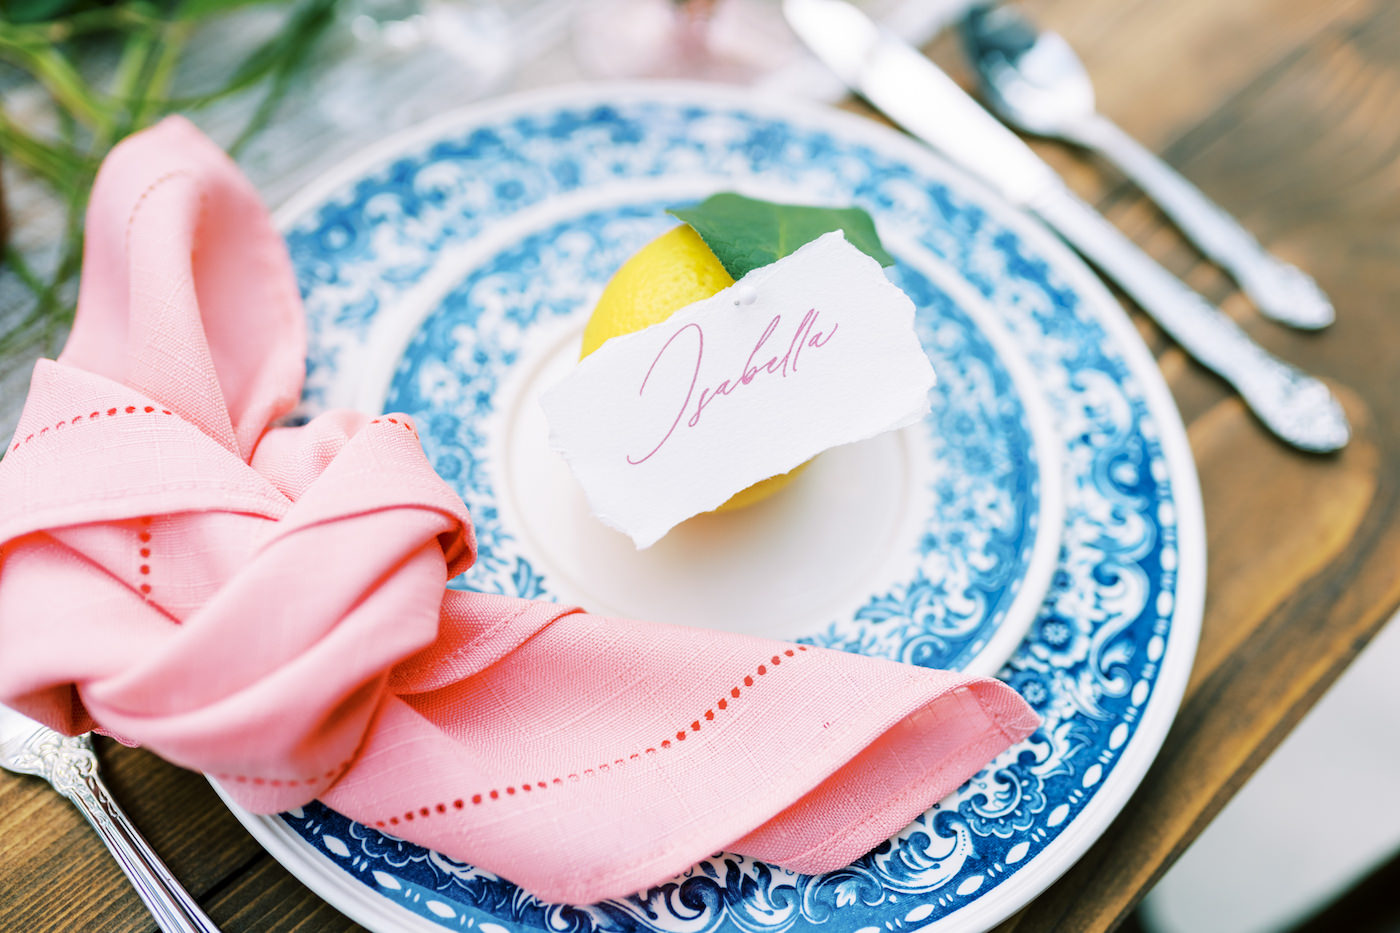 Bright Colorful Florida Citrus Wedding Inspiration | Wedding Place Settings with Vintage Blue China and Pink Hemstitch Knot Napkins and Citrus Lemon Place Cards